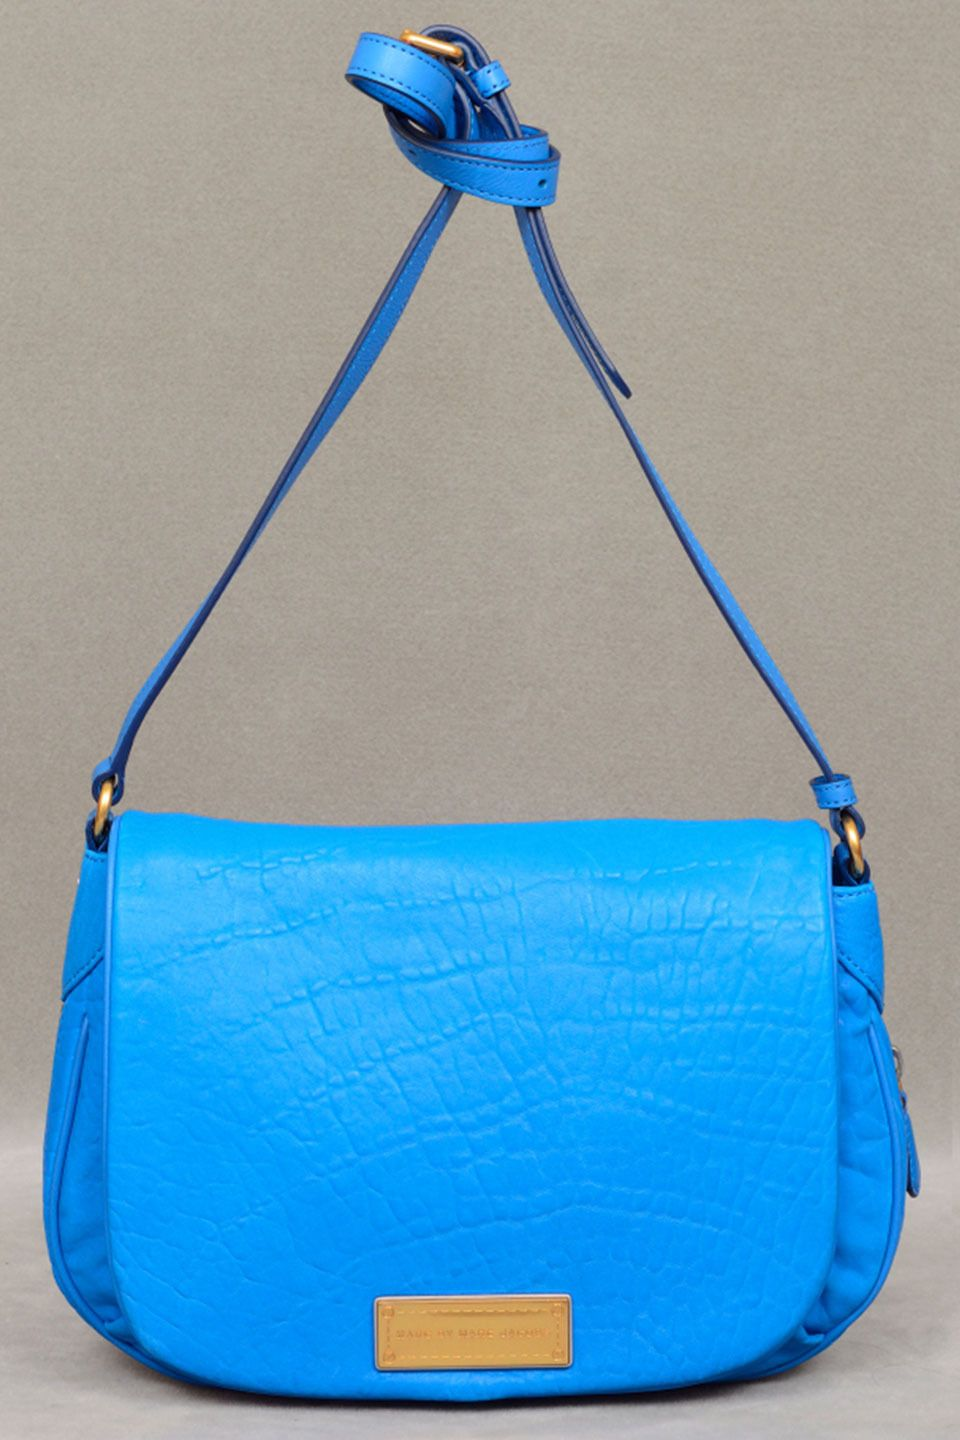 Marc by Marc Jacobs Washed Up Nash Crossbody in Blueglow - Beyond the Rack